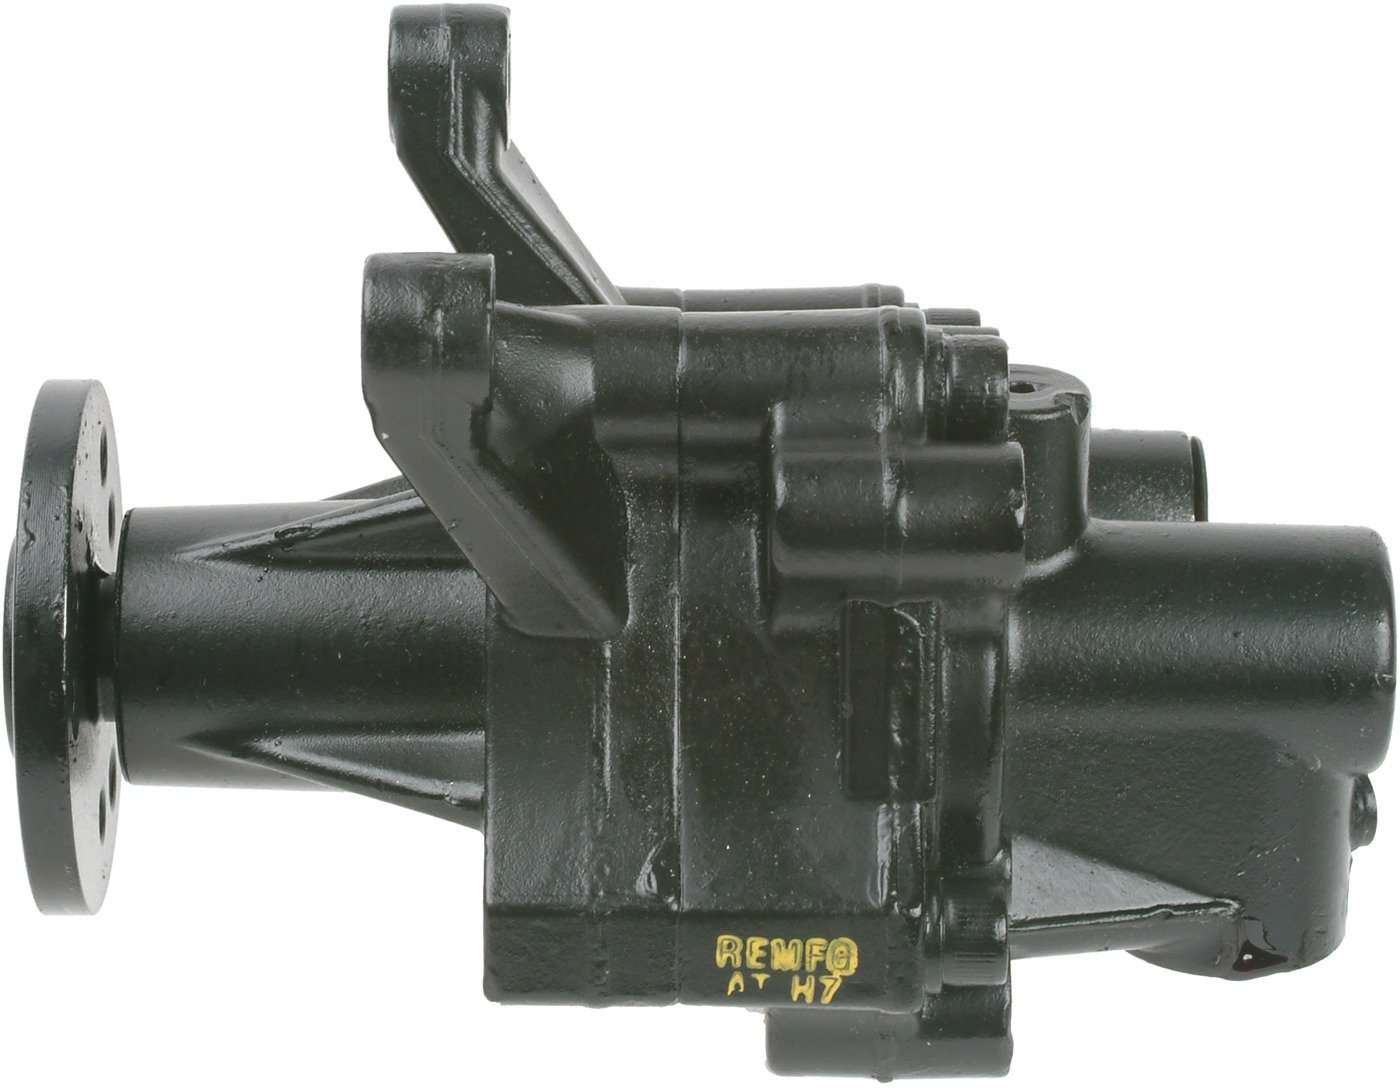 Cardone 21-5968 Remanufactured Import Power Steering Pump A1 Cardone 215968AAF